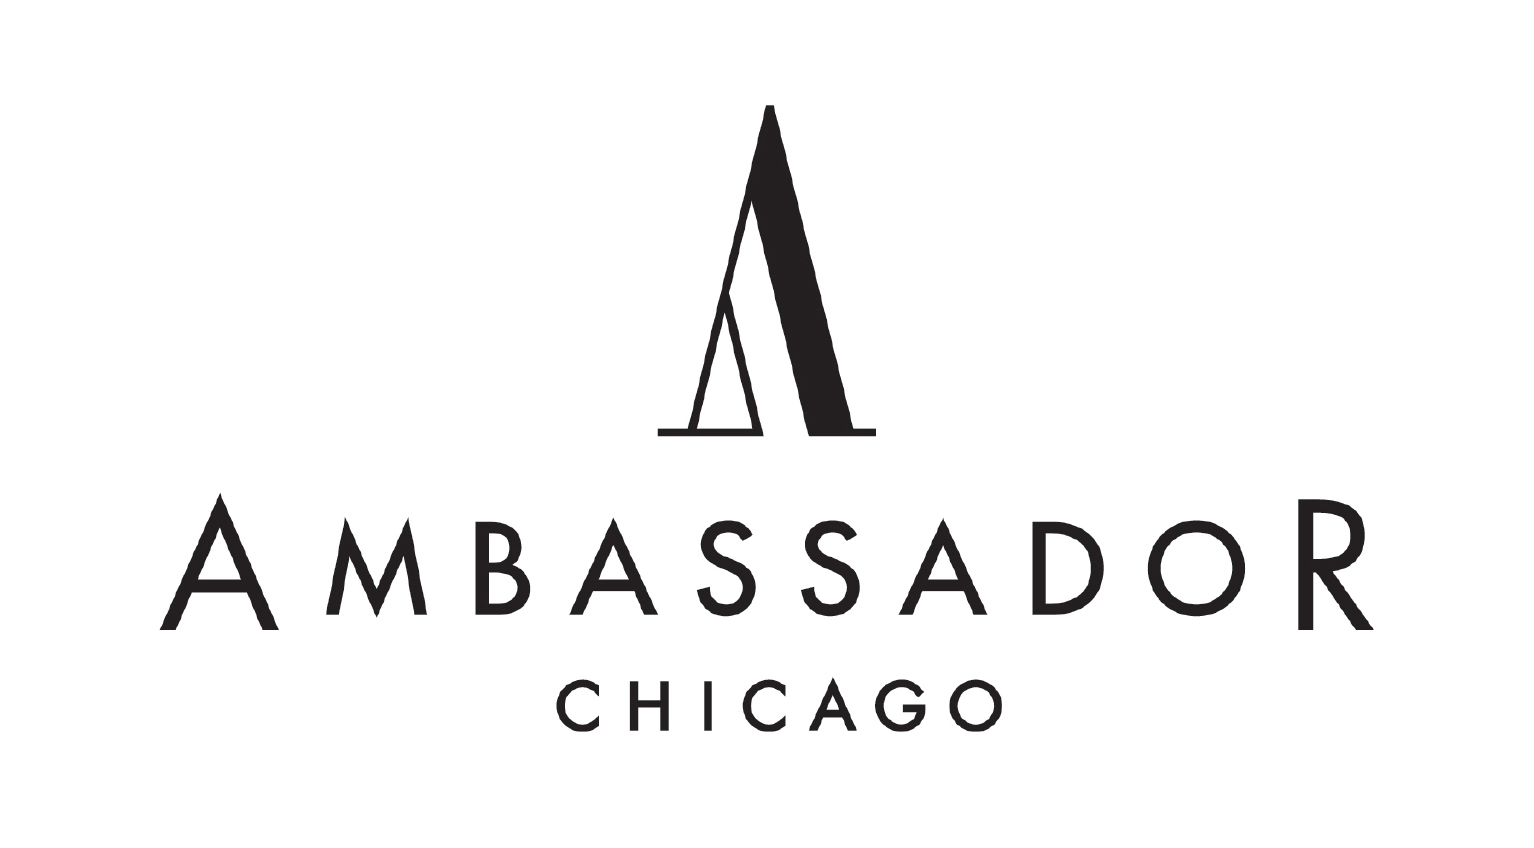 Ambassador Chicago